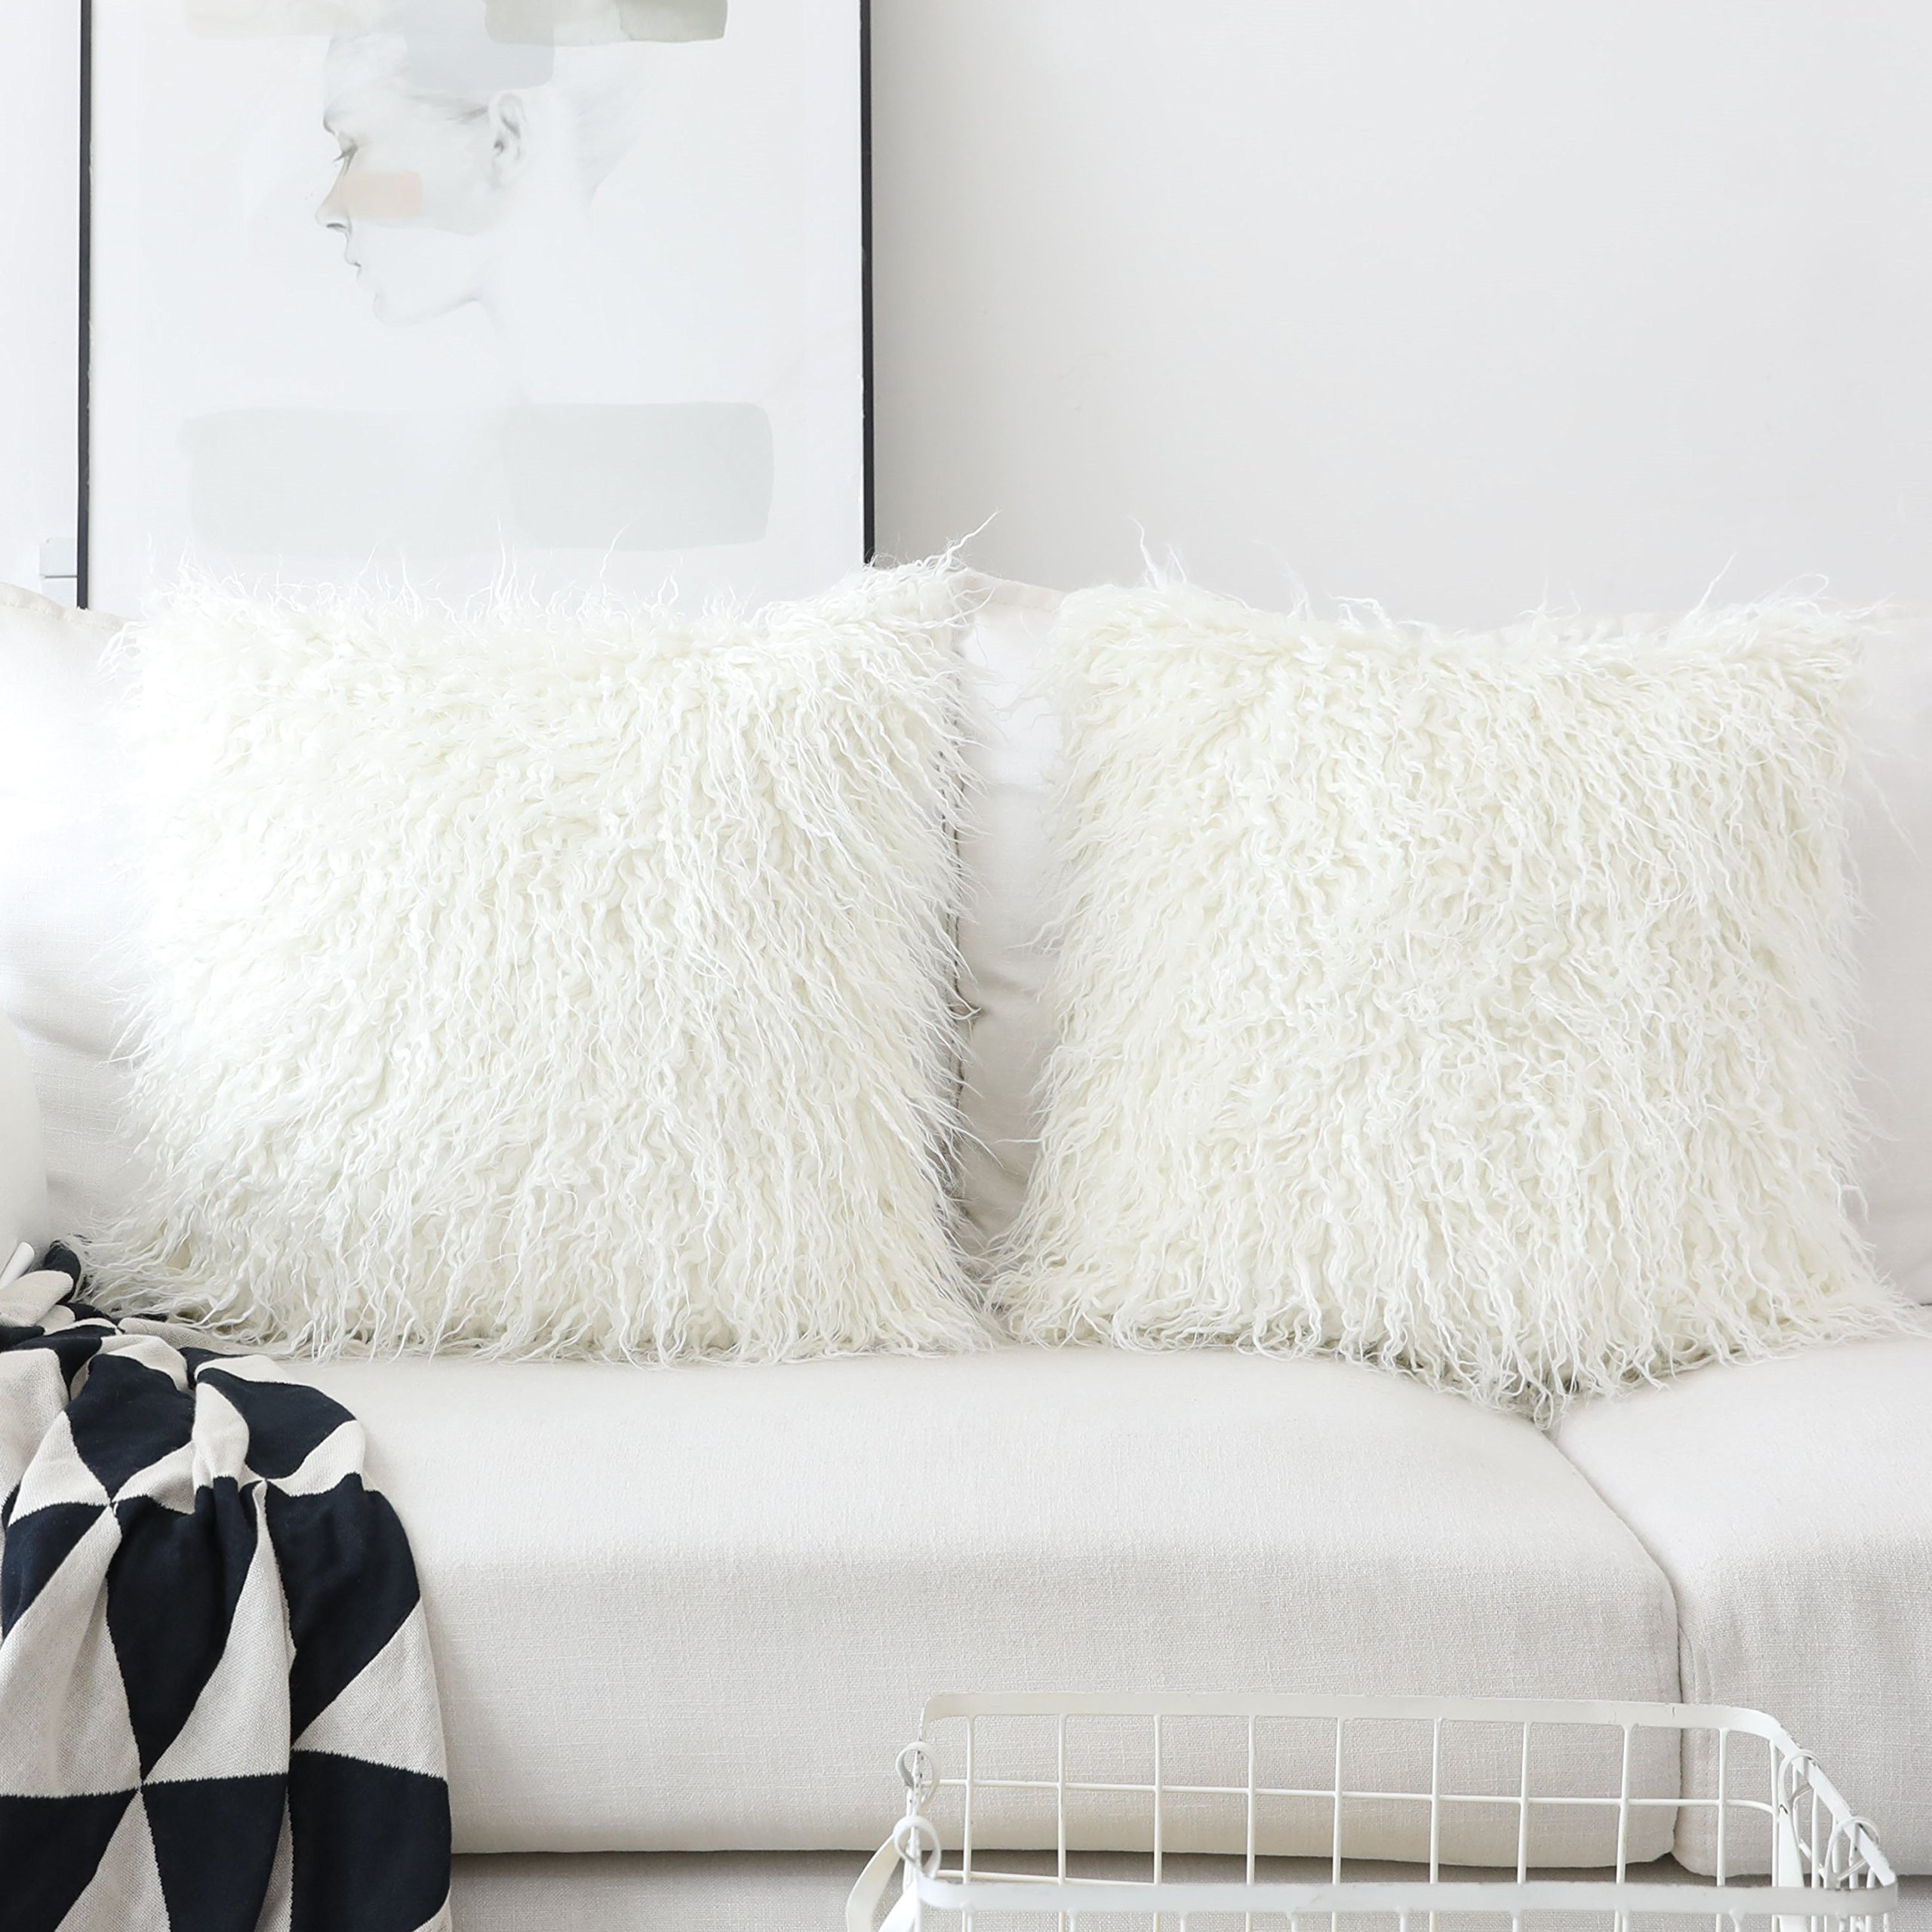 HOME BRILLIANT Set of 2 Decorative Faux Fur Euro Sham Large Fuzzy Throw Pillow Cover for Bed 24''x24'', 60x60cm, Off-White